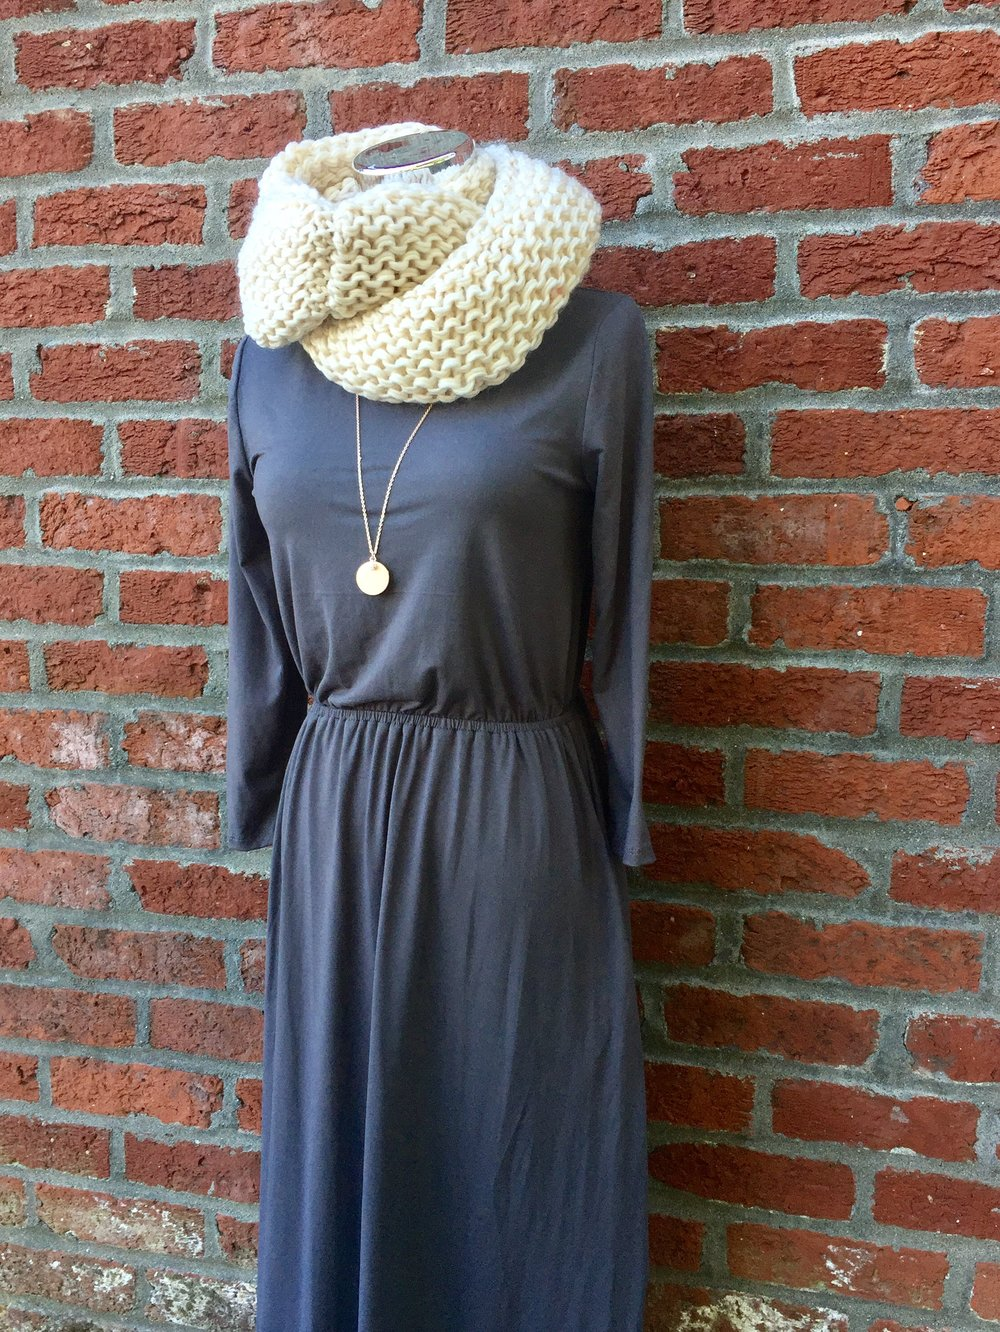 Reb + J Grey Dress ($35) with Chunky Scarf ($21)